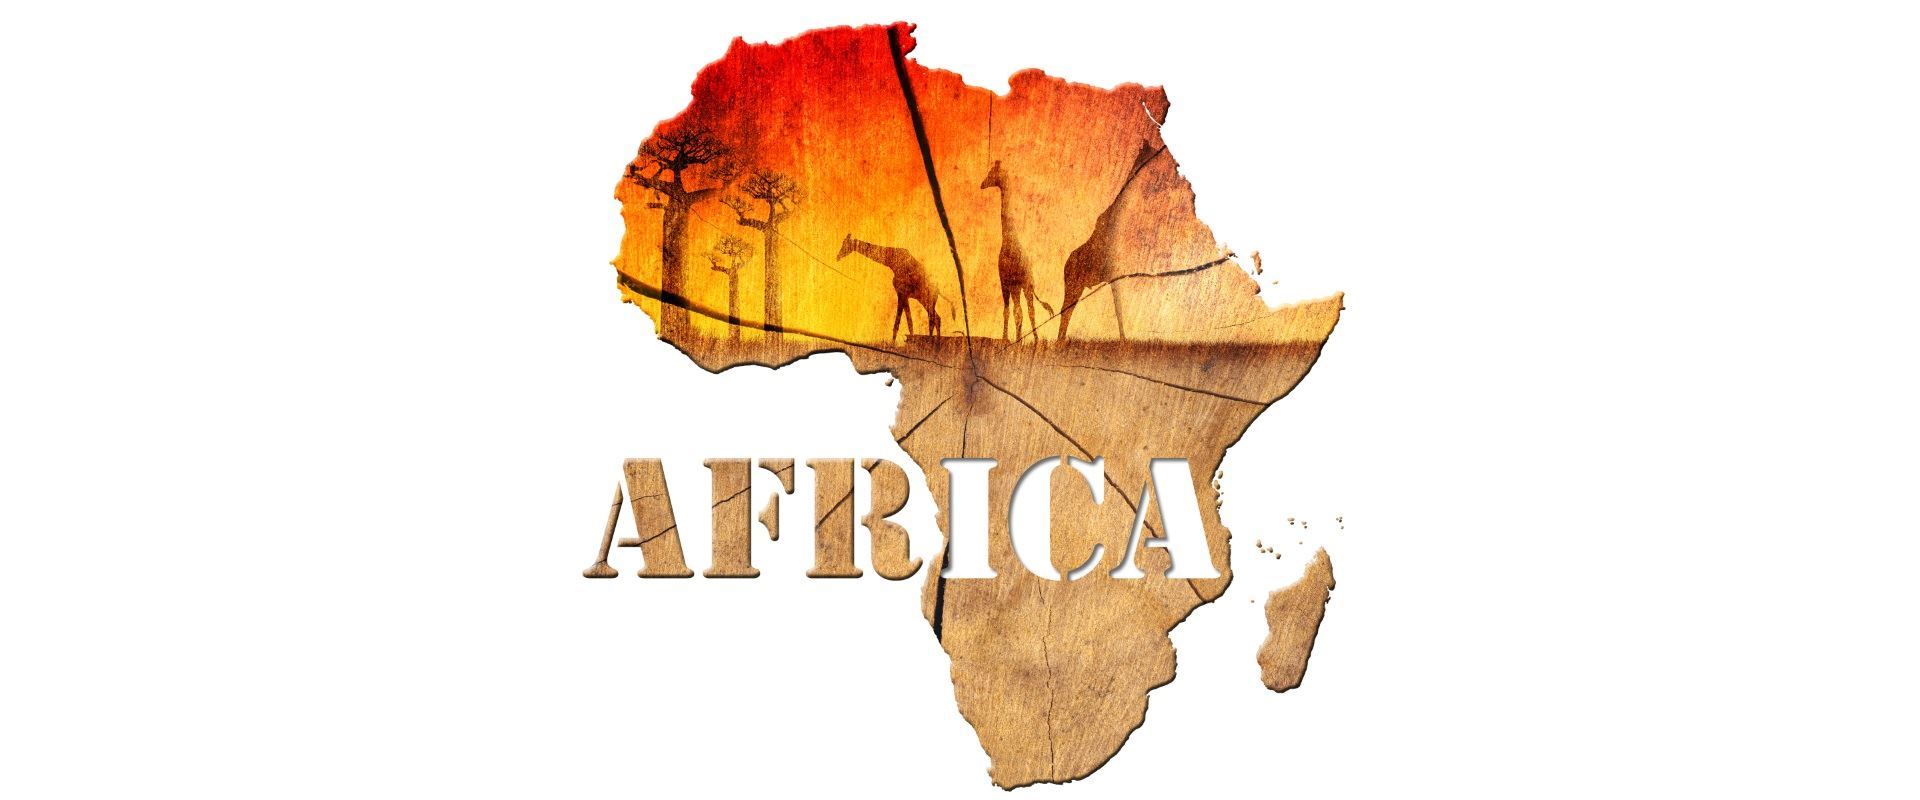 Africa Map Background.News Employee Background Screening In Africa Is Possible Mie